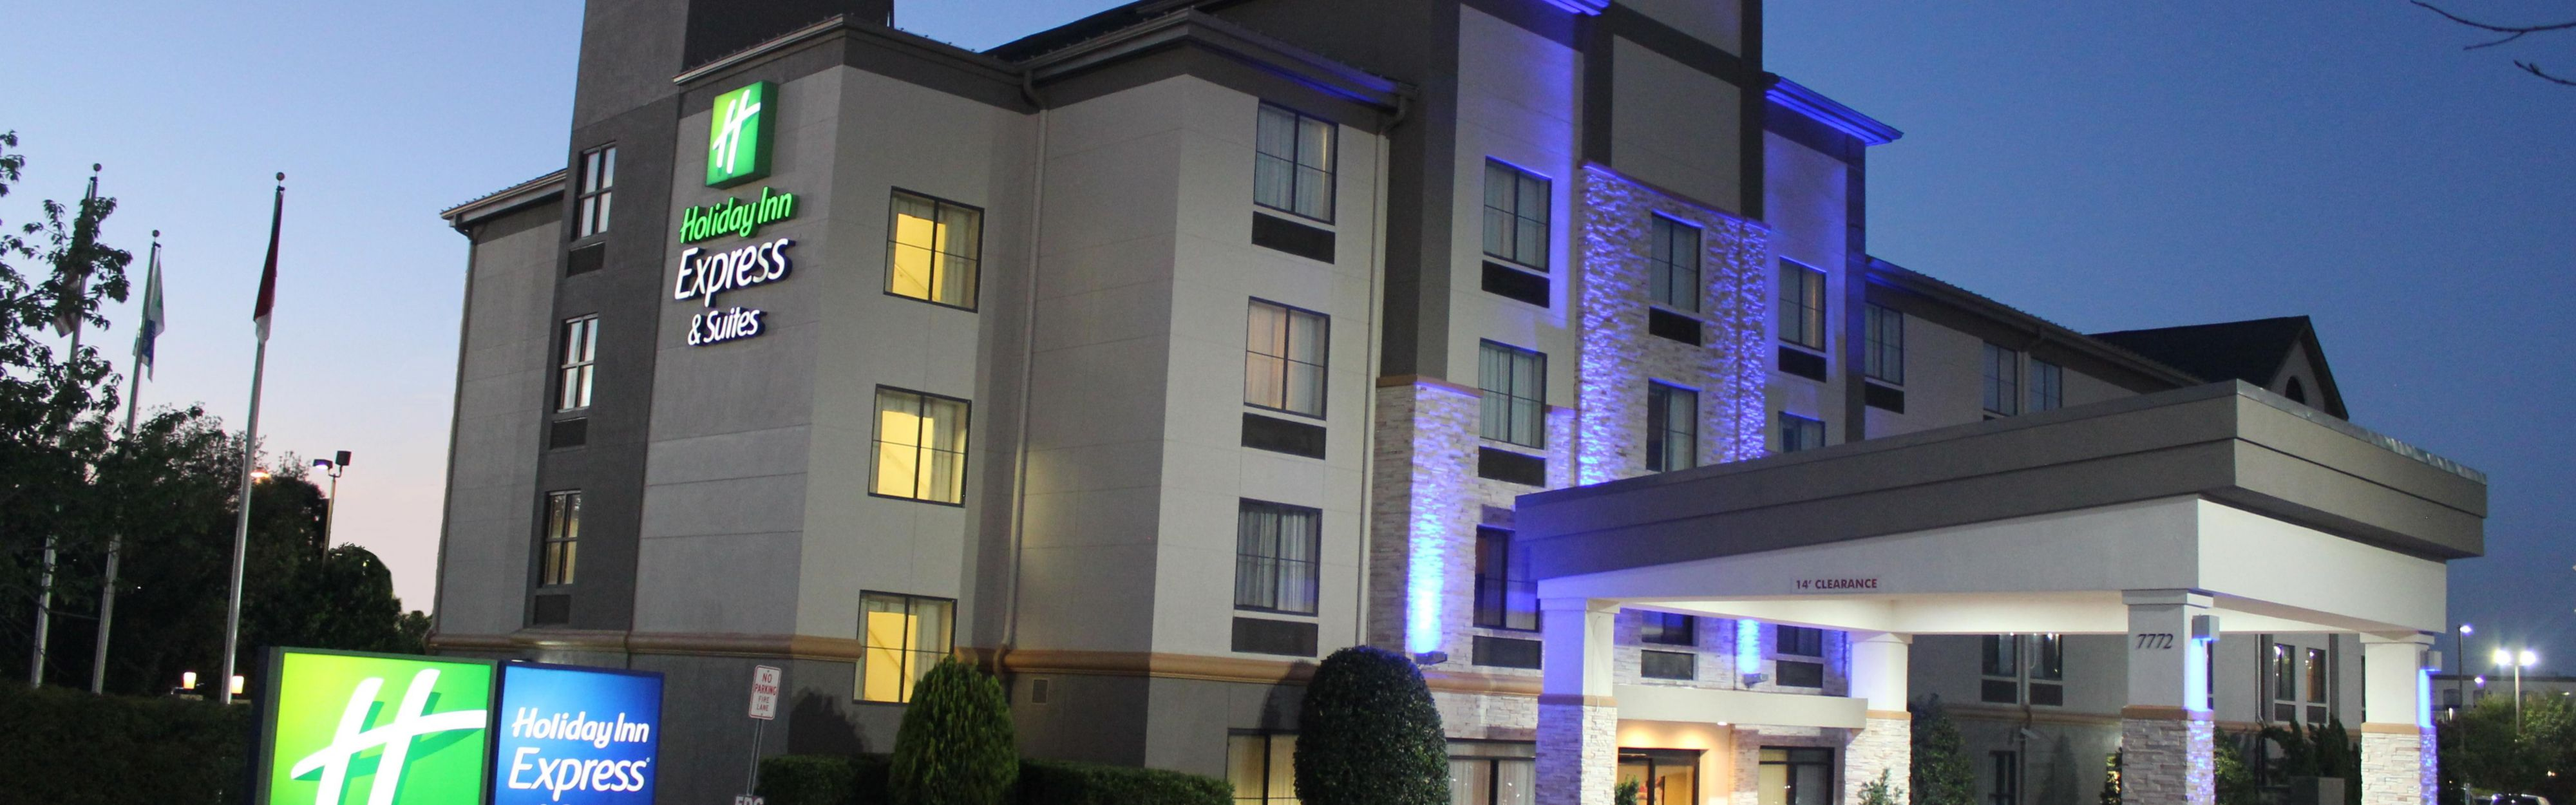 Stunning Hotel Entrance With Hotels Near Charlotte Motor Sdway Concord Nc